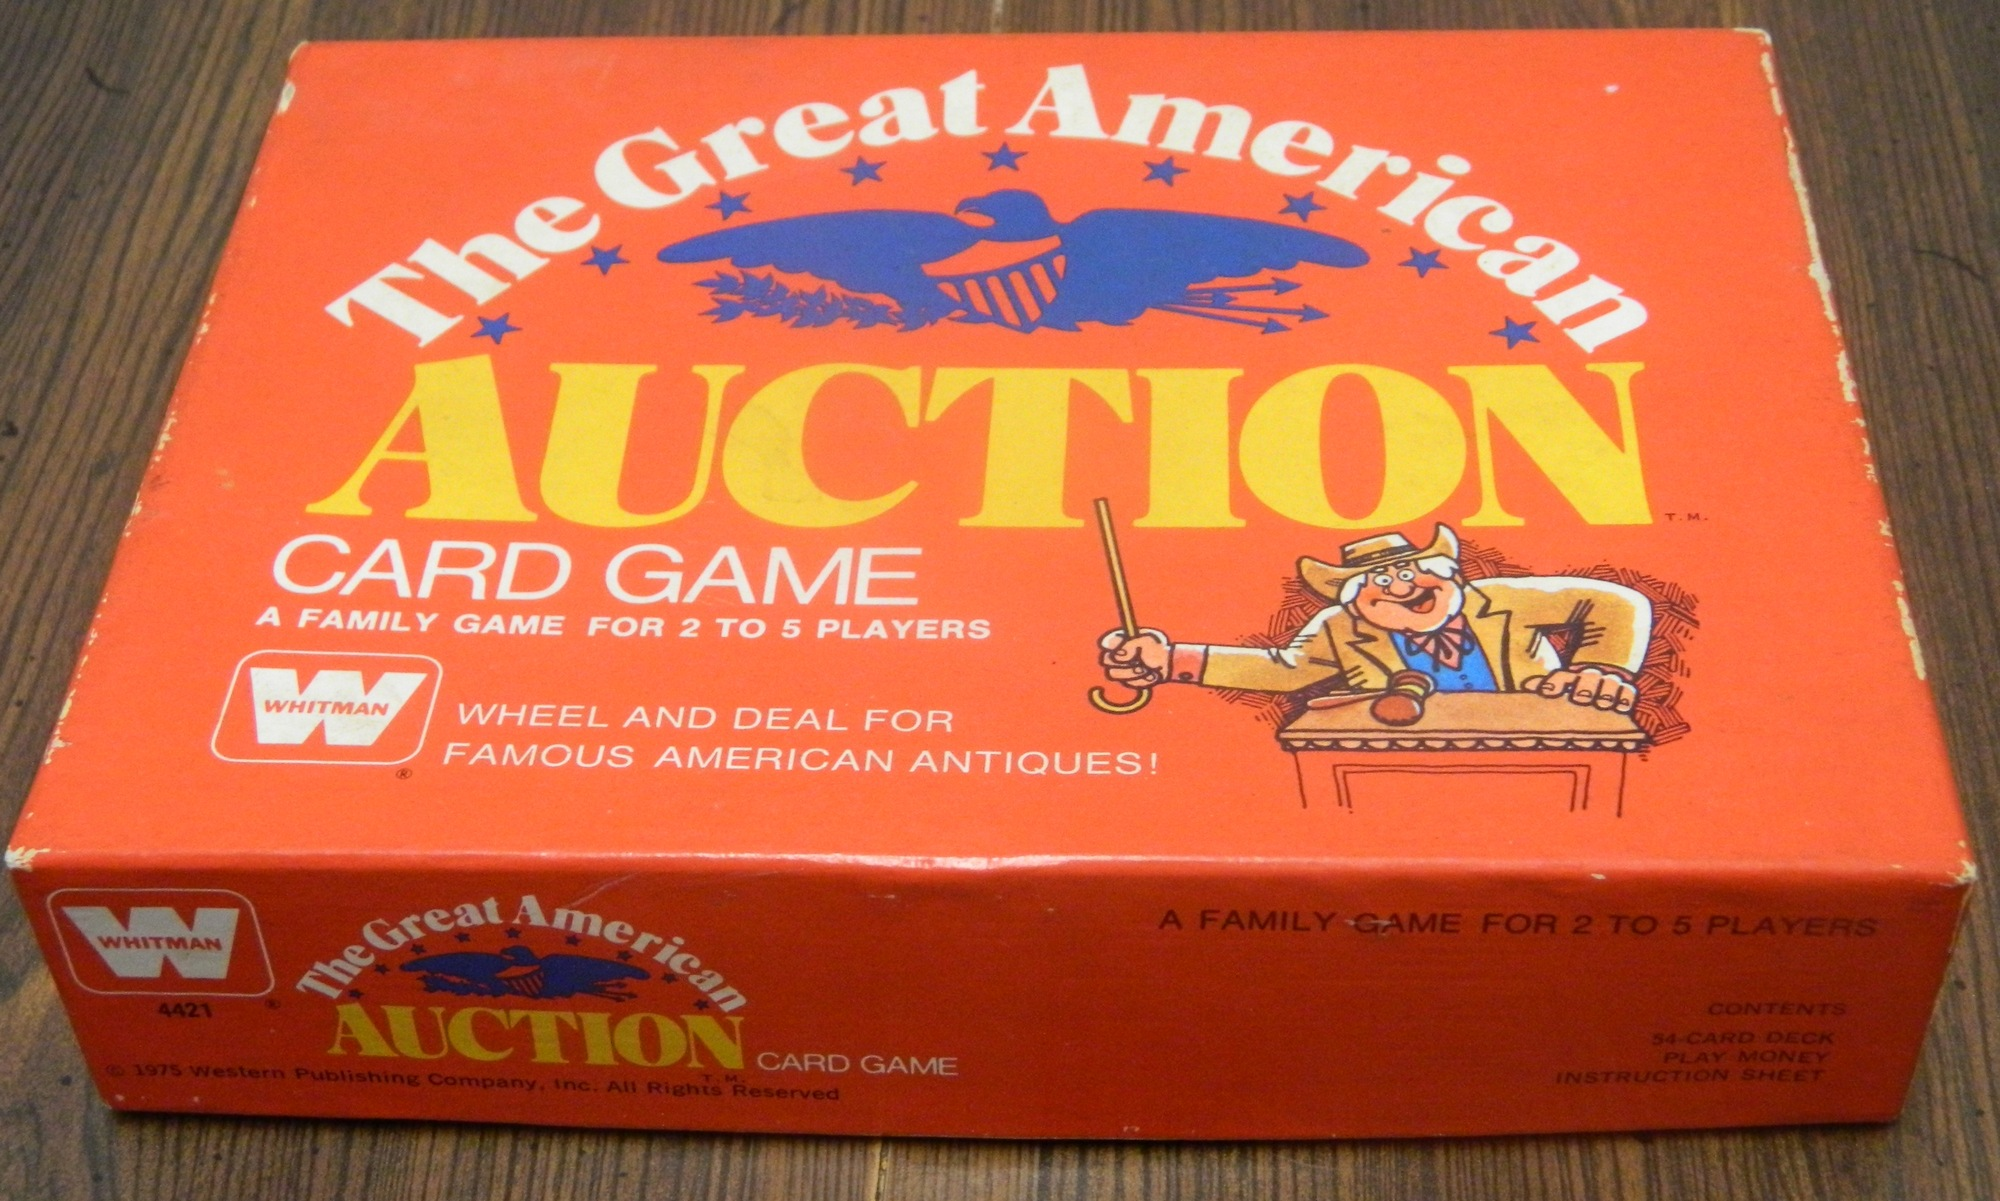 Great American Auction Card Game Box